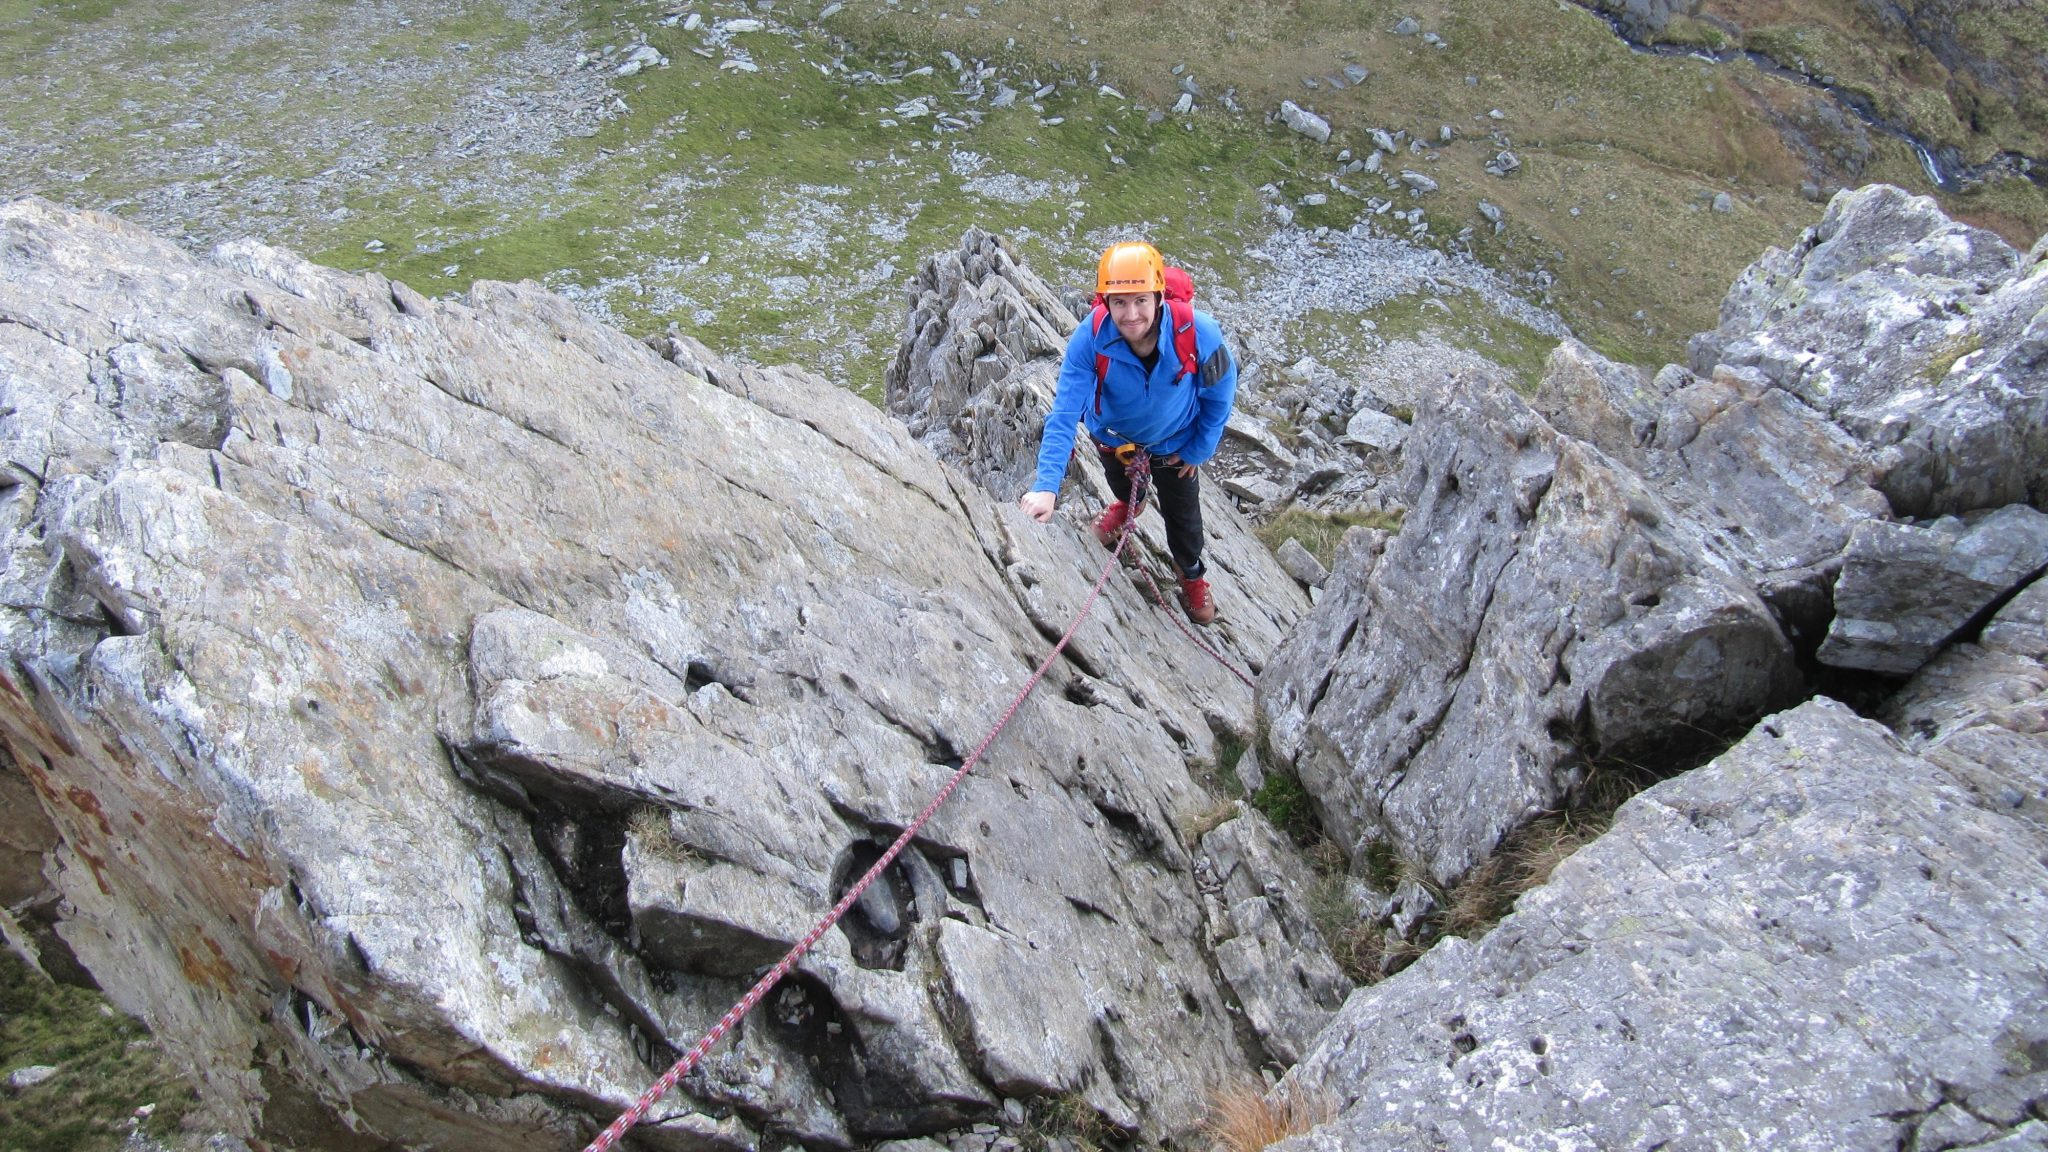 A climber moving up the Cneifion Arete during an advanced scrambling course in Snowdonia